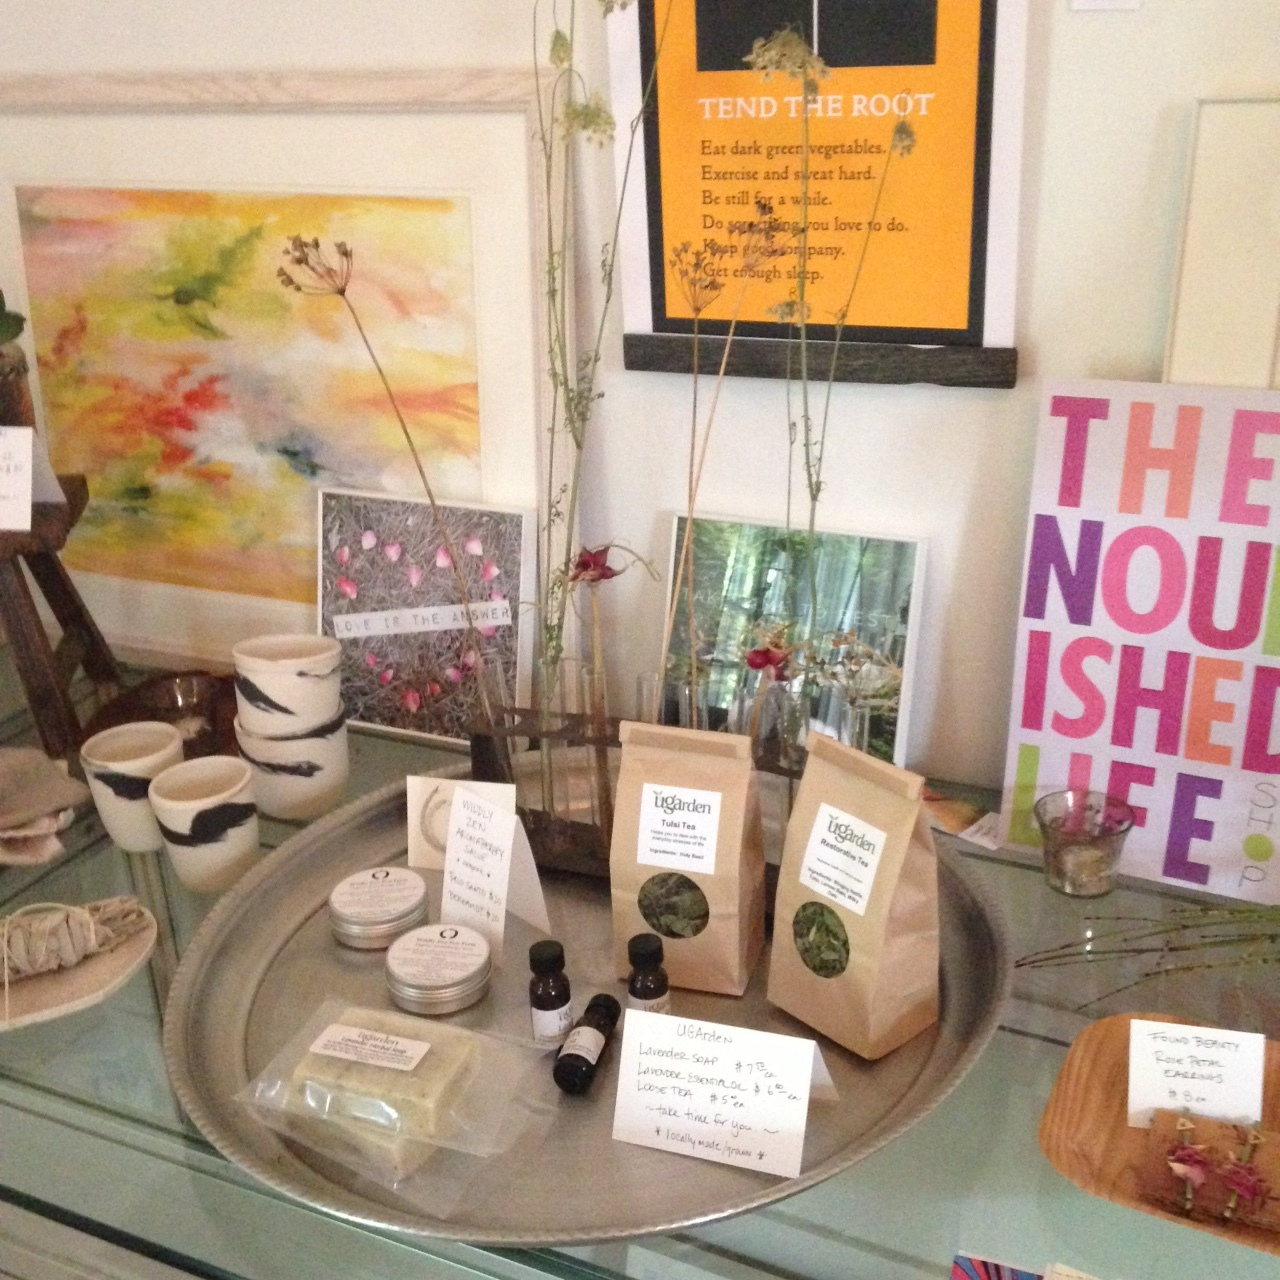 Remembering to nourish the senses. The Nourished Life pop up shop features locally-made products that inspire healthy living and support our community of artisans and alchemists.